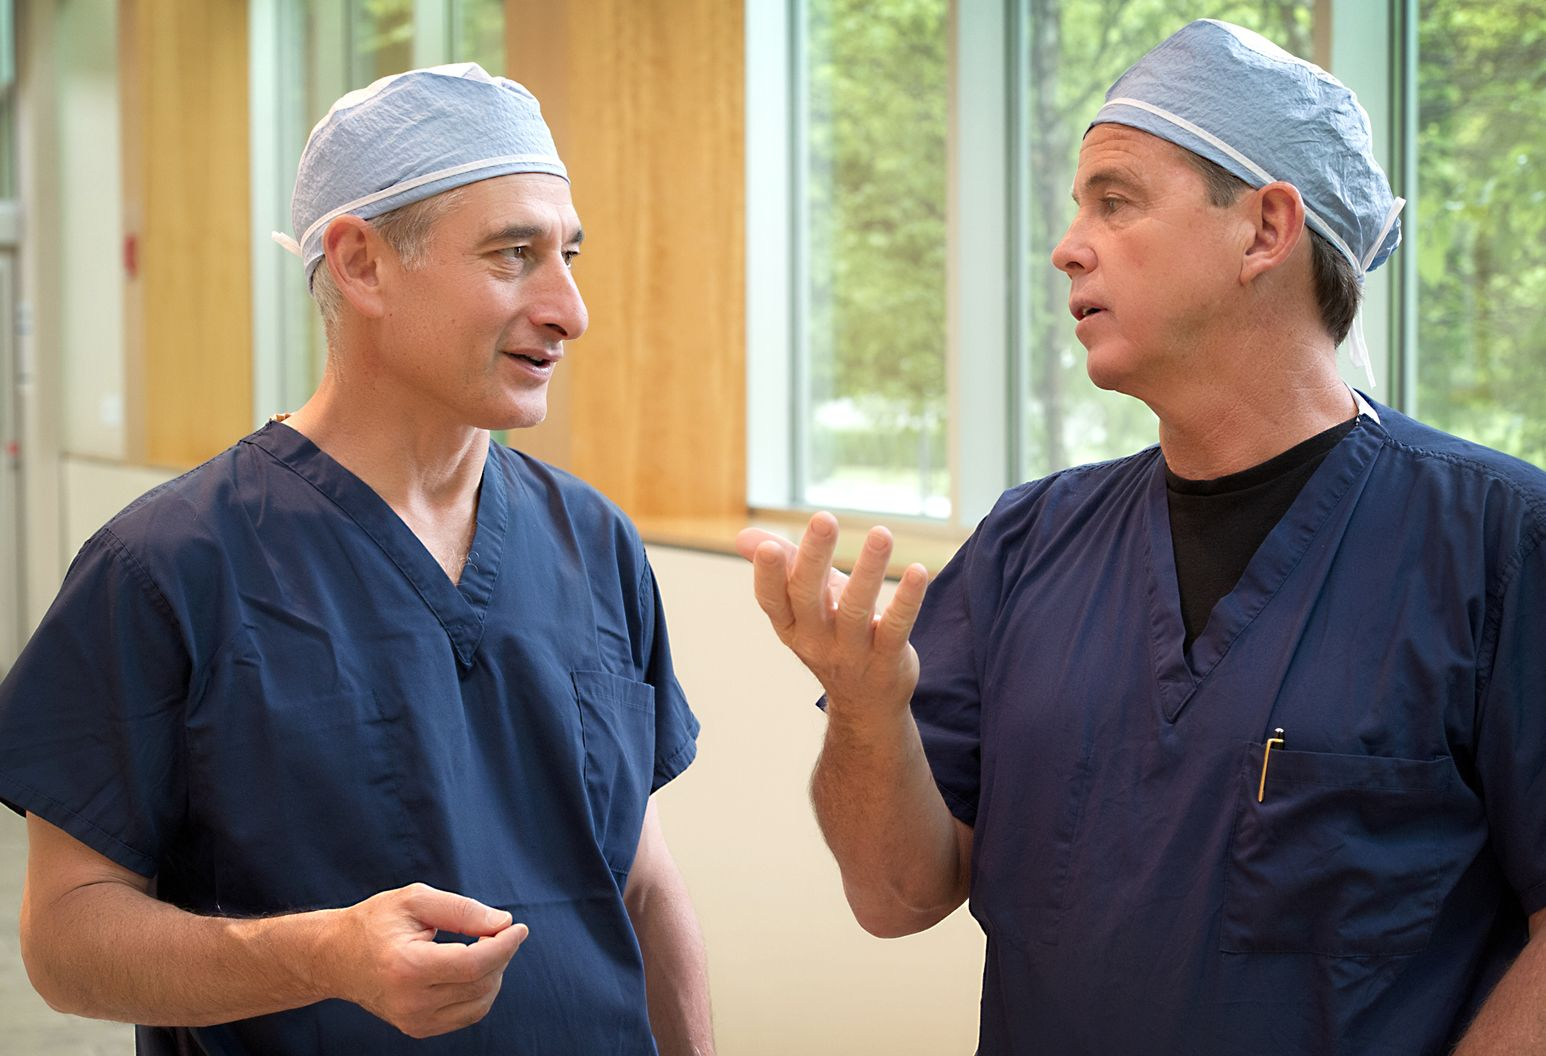 Two physicians in blue scrubs and scrub caps, standing and talking in hallway